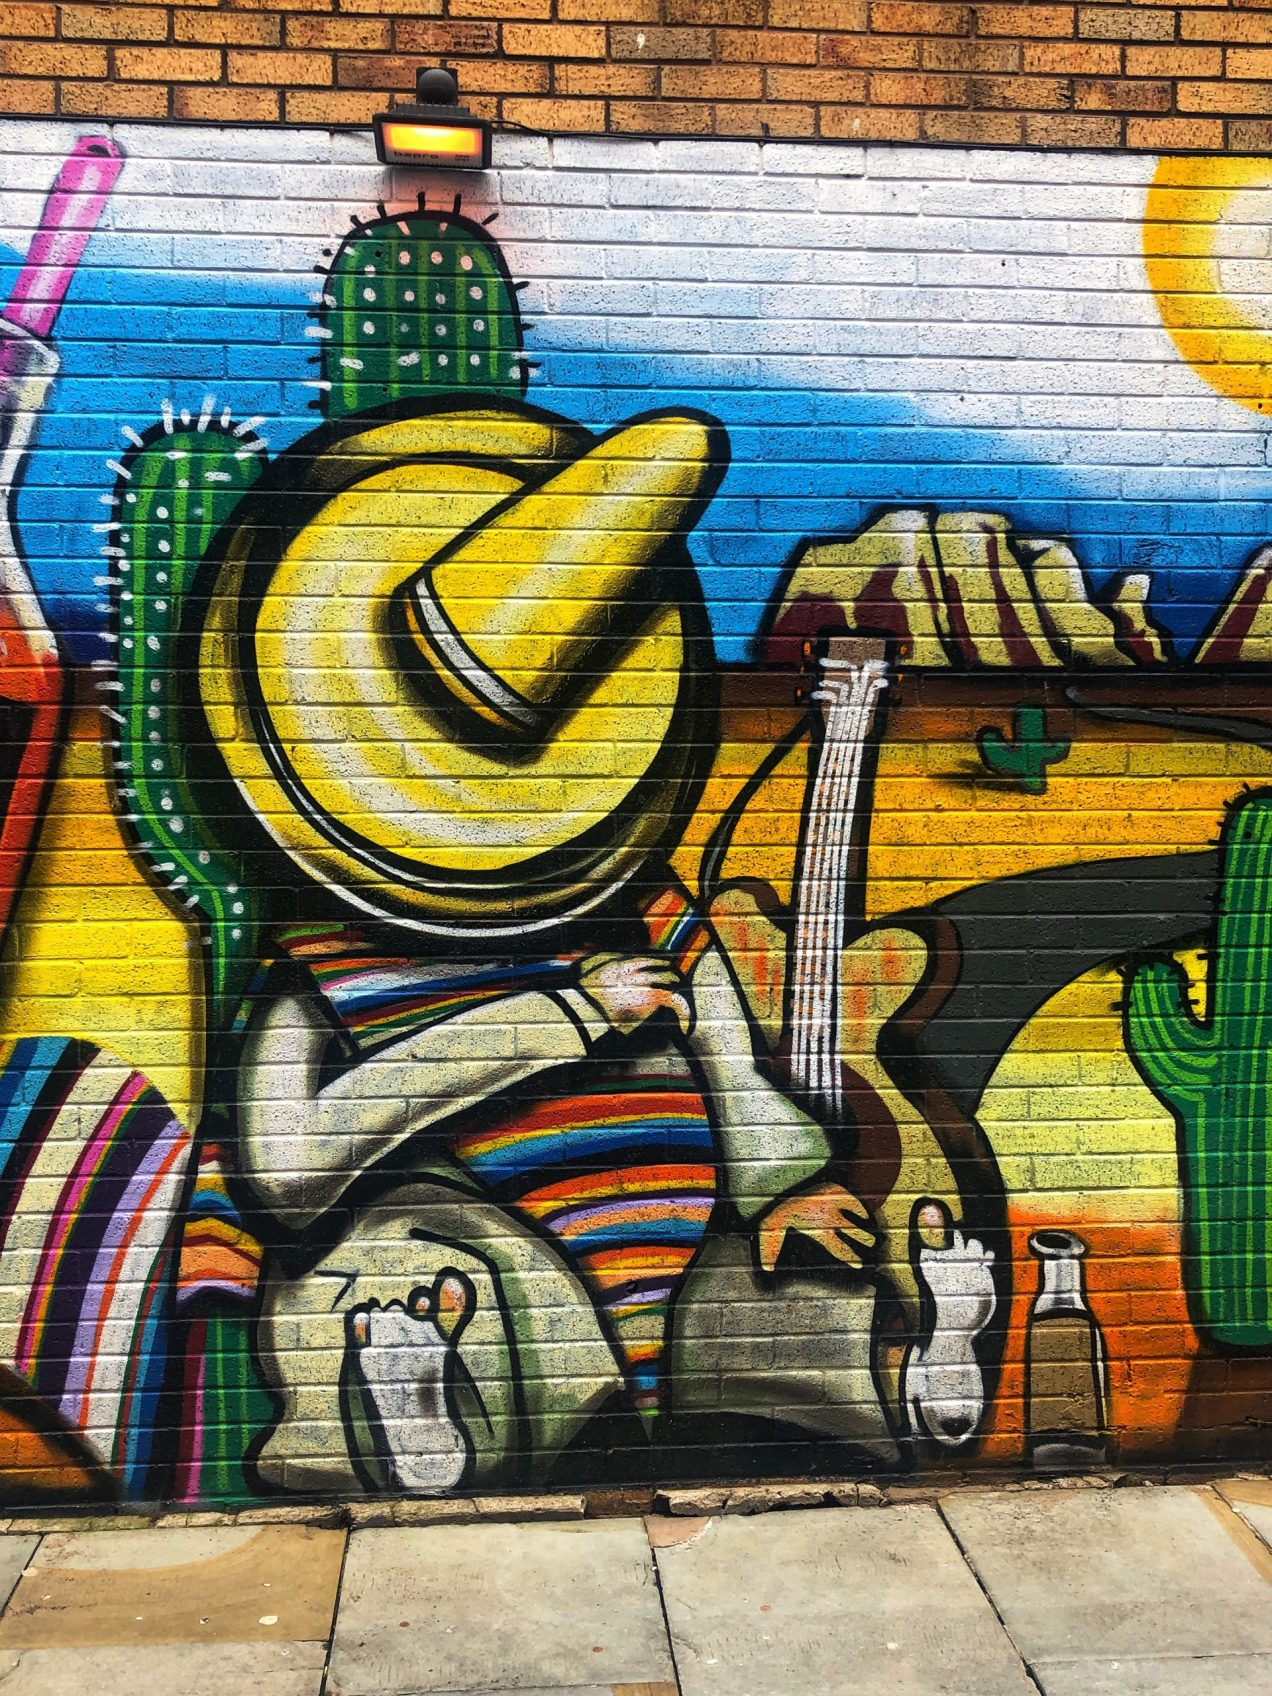 Street art on the walls of La Parrilla Mexican restaurant on Bold Street in Liverpool, England